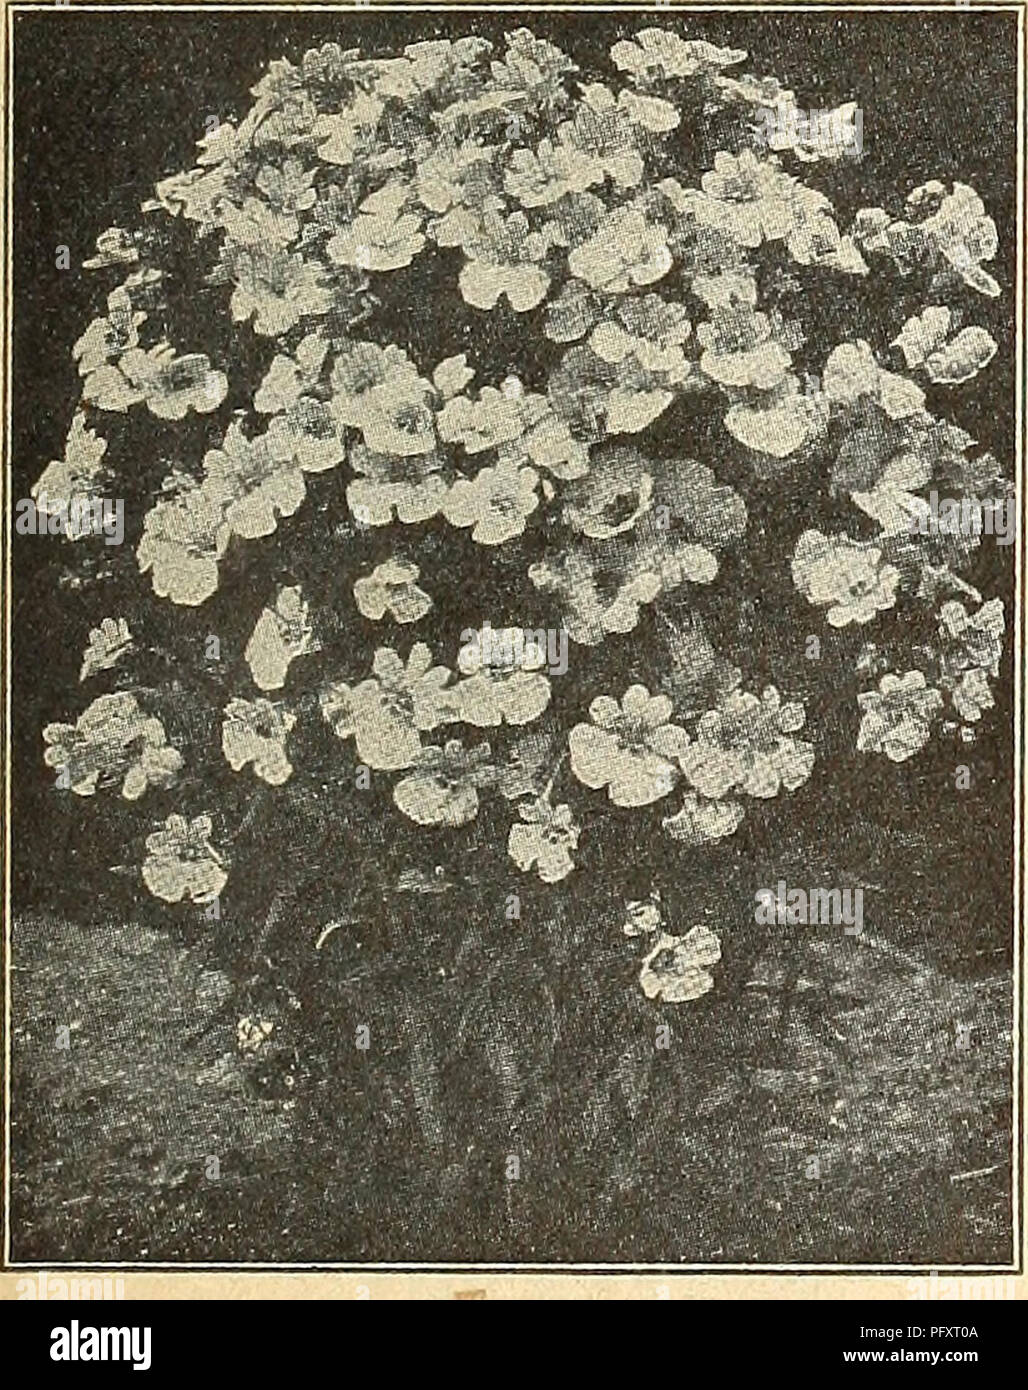 . Currie's farm and garden annual : spring 1926. Flowers Seeds Catalogs; Bulbs (Plants) Seeds Catalogs; Vegetables Seeds Catalogs; Nurseries (Horticulture) Catalogs; Plants, Ornamental Catalogs; Gardening Equipment and supplies Catalogs. Tall Variegated Leaved Nasturtium—Fine mixed. Pkt. 10; oz. 15c; Dwarf Variegated Leaved Nasturtium—Fine mixed. Pkt. 10c; oz. 15c; ^ lb. 50c, y^, lb. 50c. IVY LEAVED NASTURTIUM. A striking class, bearing profusely star-like flo^wers of various shades of yellow, orange, scarlet, etc., all beautifully cut and fringed. The foliage is dark green, veined white, and  - Stock Image